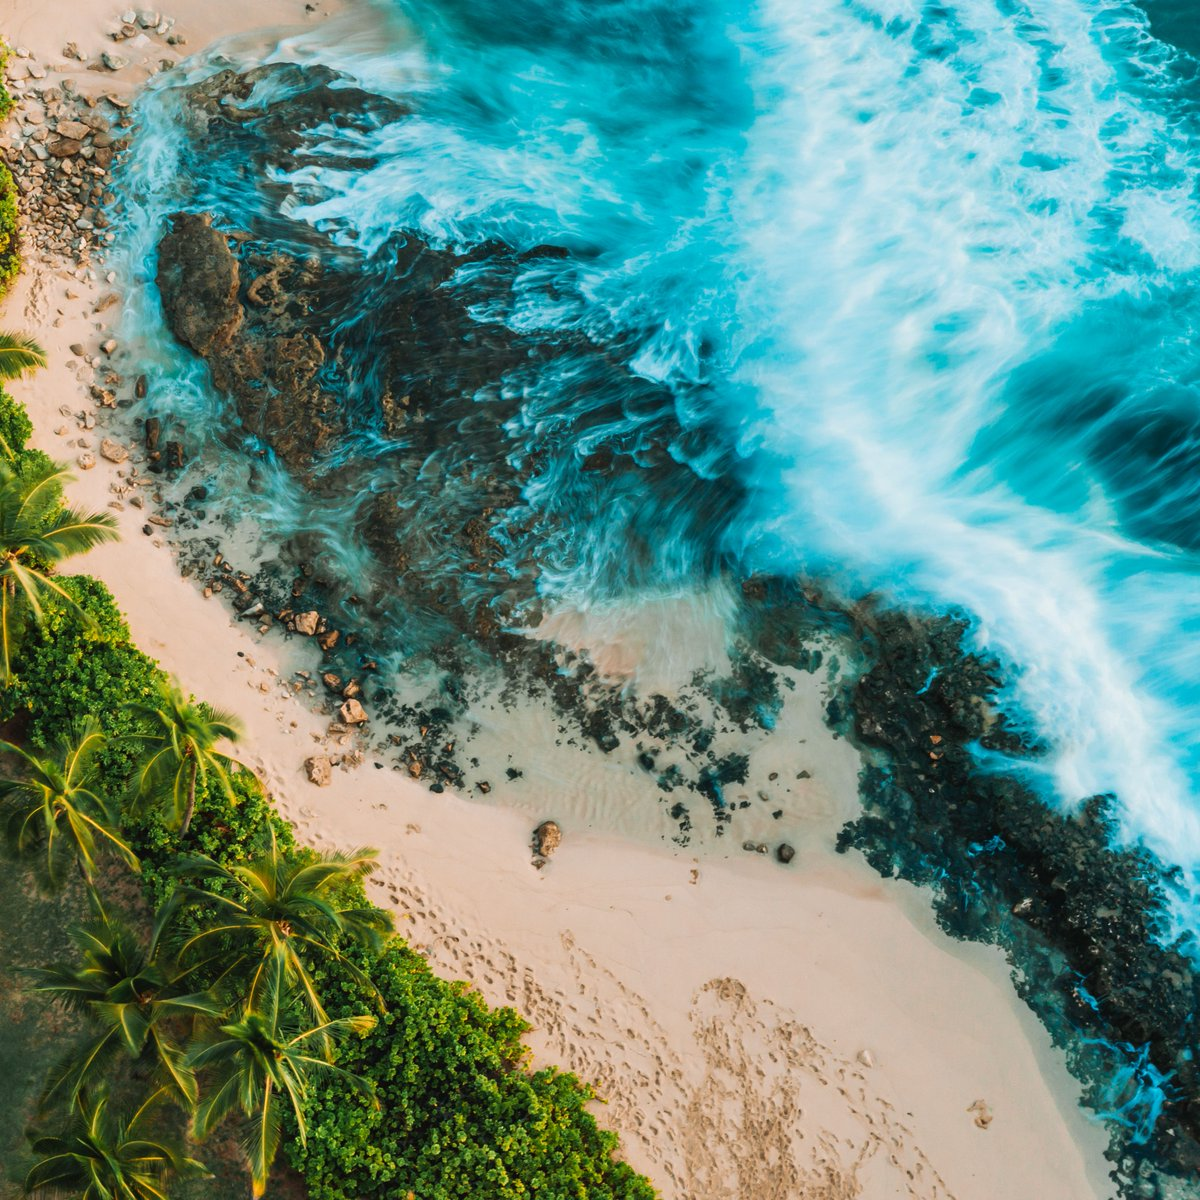 LAST CHANCE: Enter to win a free trip to Hawaii ✈️ We're giving one lucky member of the clean ocean movement and a friend the chance to fly to Oahu, Hawaii! TO ENTER, visit bit.ly/3zwinkZ & fill out the form for your chance to win this incredible trip!